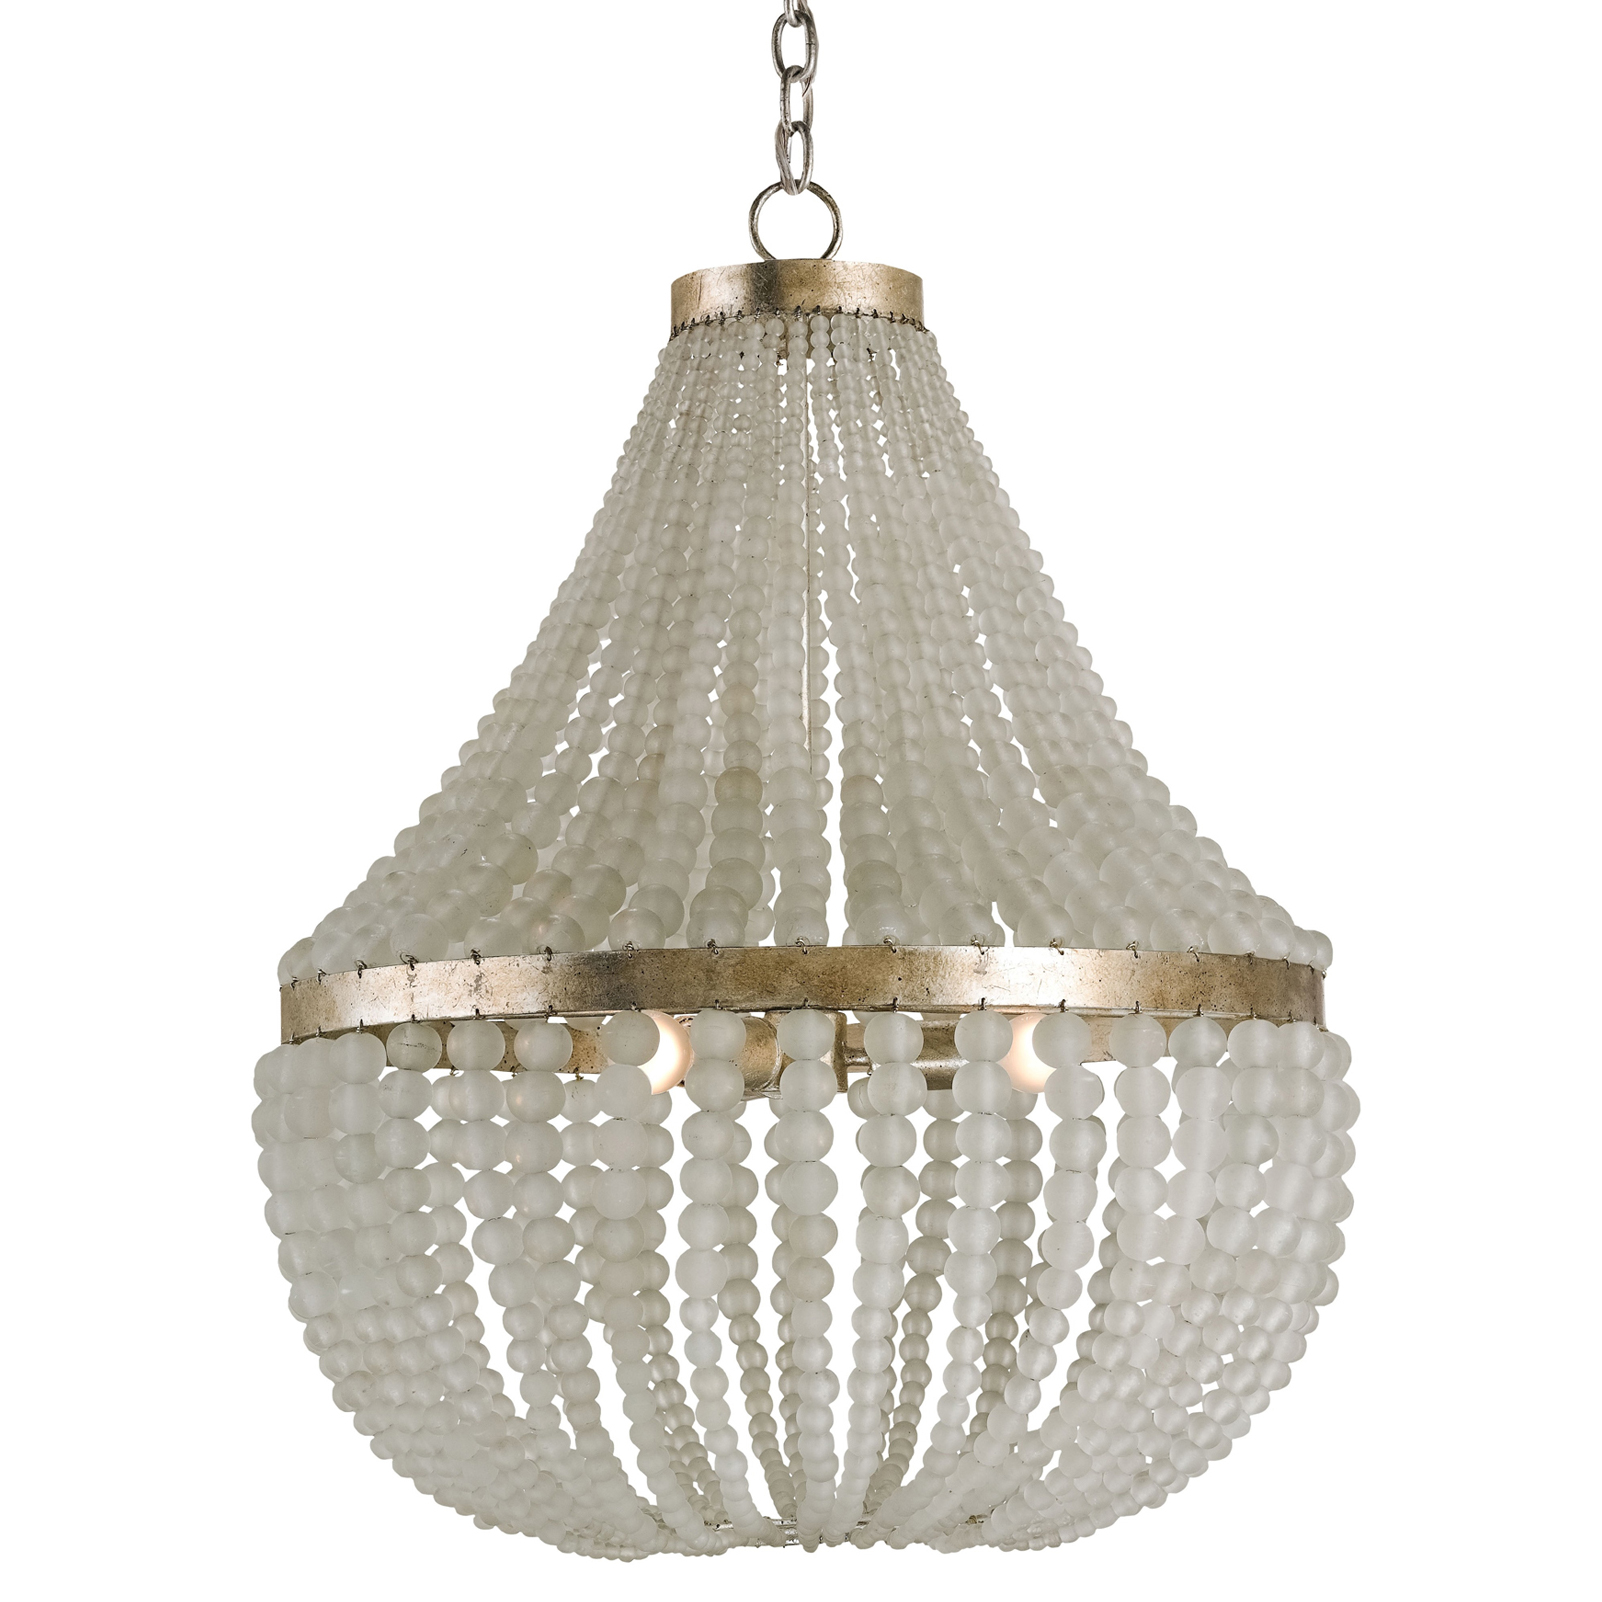 free light garden home steel shipping chandelier brushed craft bead today white product wood overstock design zander